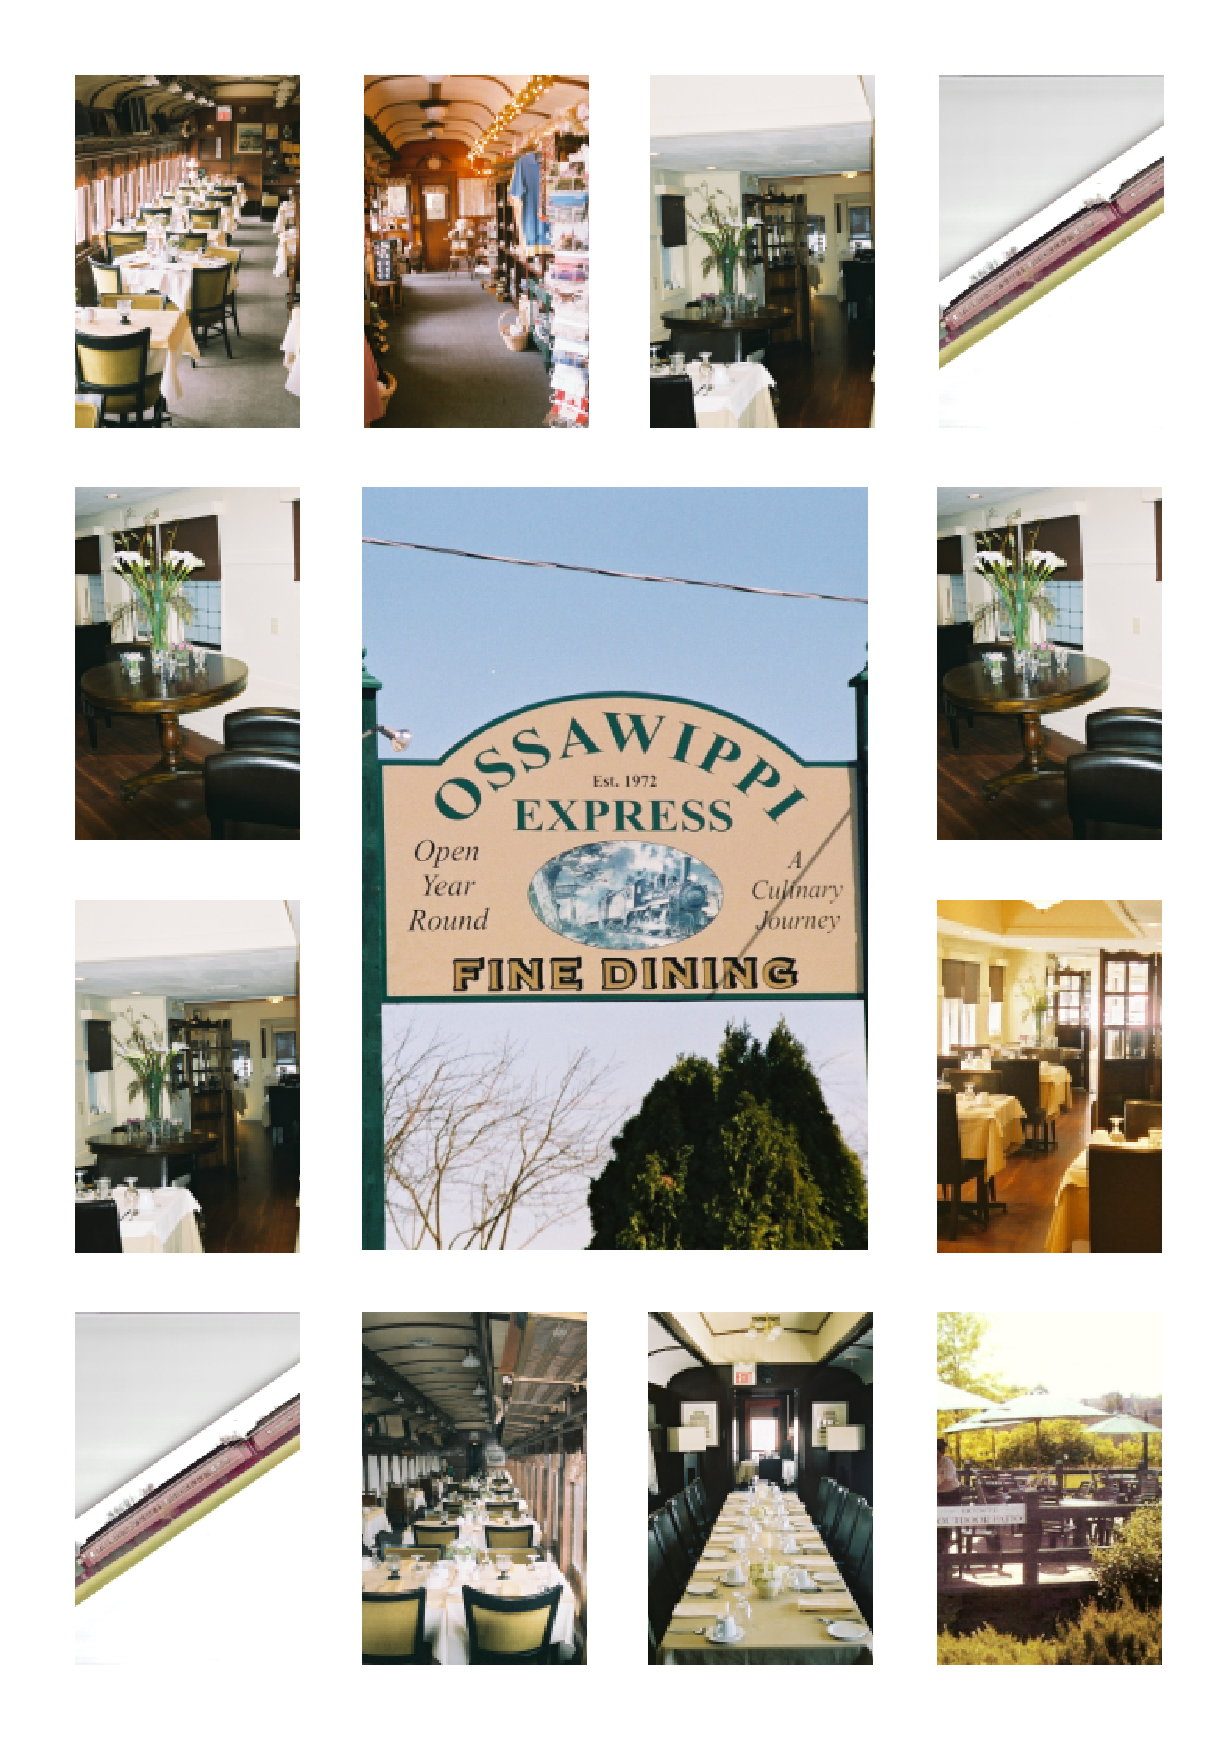 Ossawippi Express Dining Cars